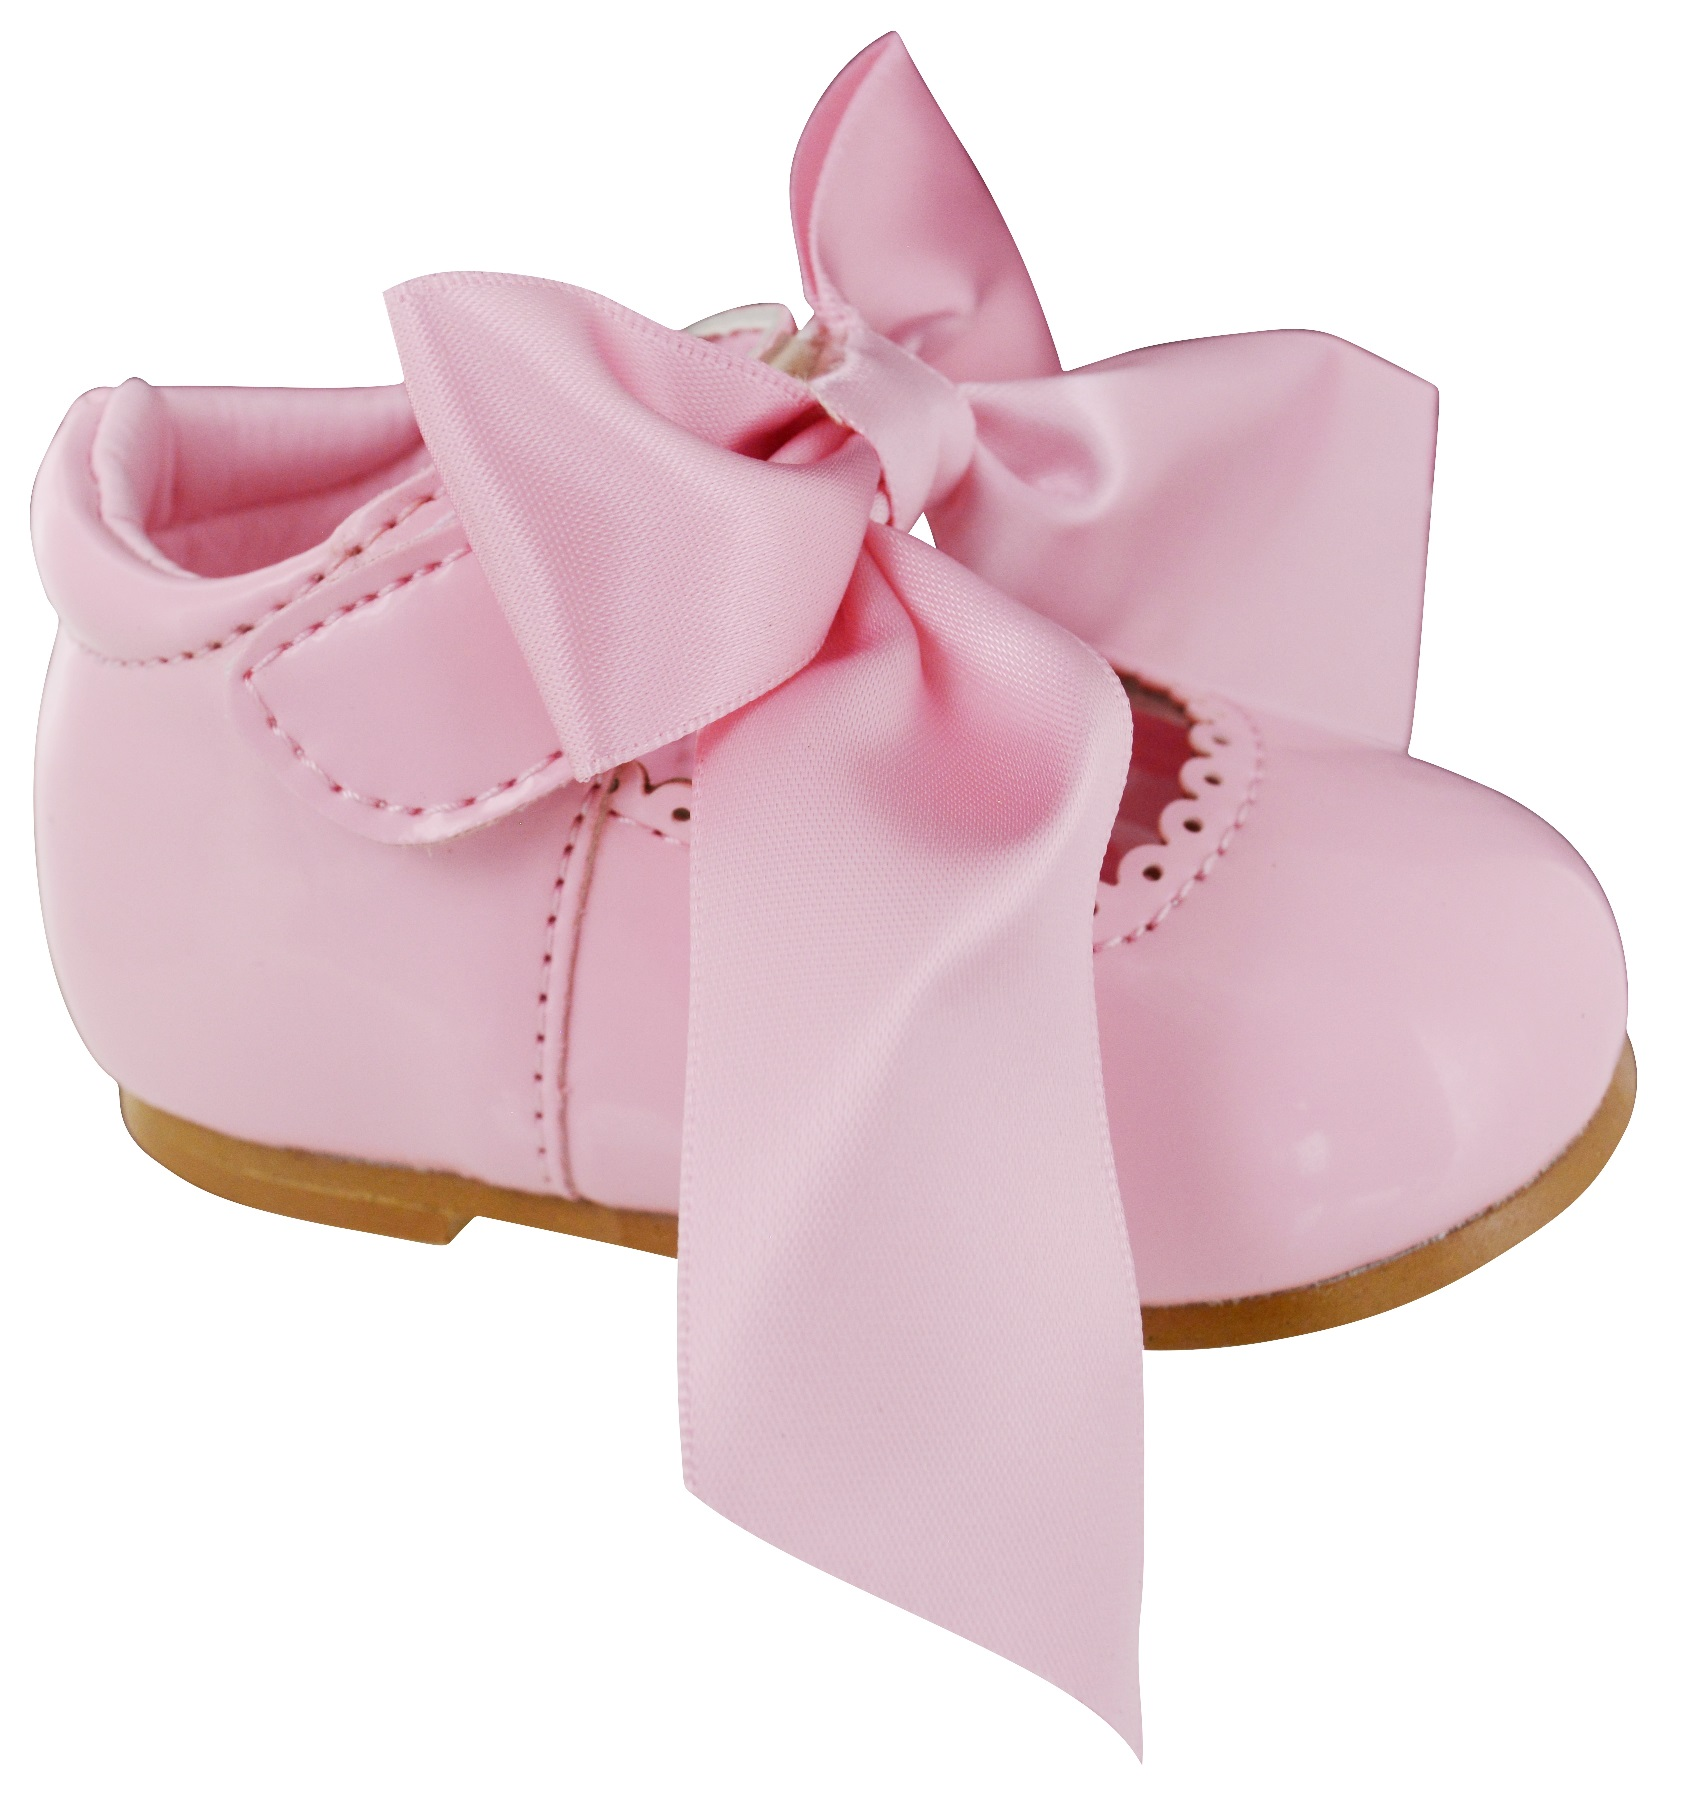 INFANTS-BABY-GIRLS-PATENT-GLOSSY-SATIN-BOW-TOODLER-WEDDING-FLAT-SHOES-SIZE-1-8